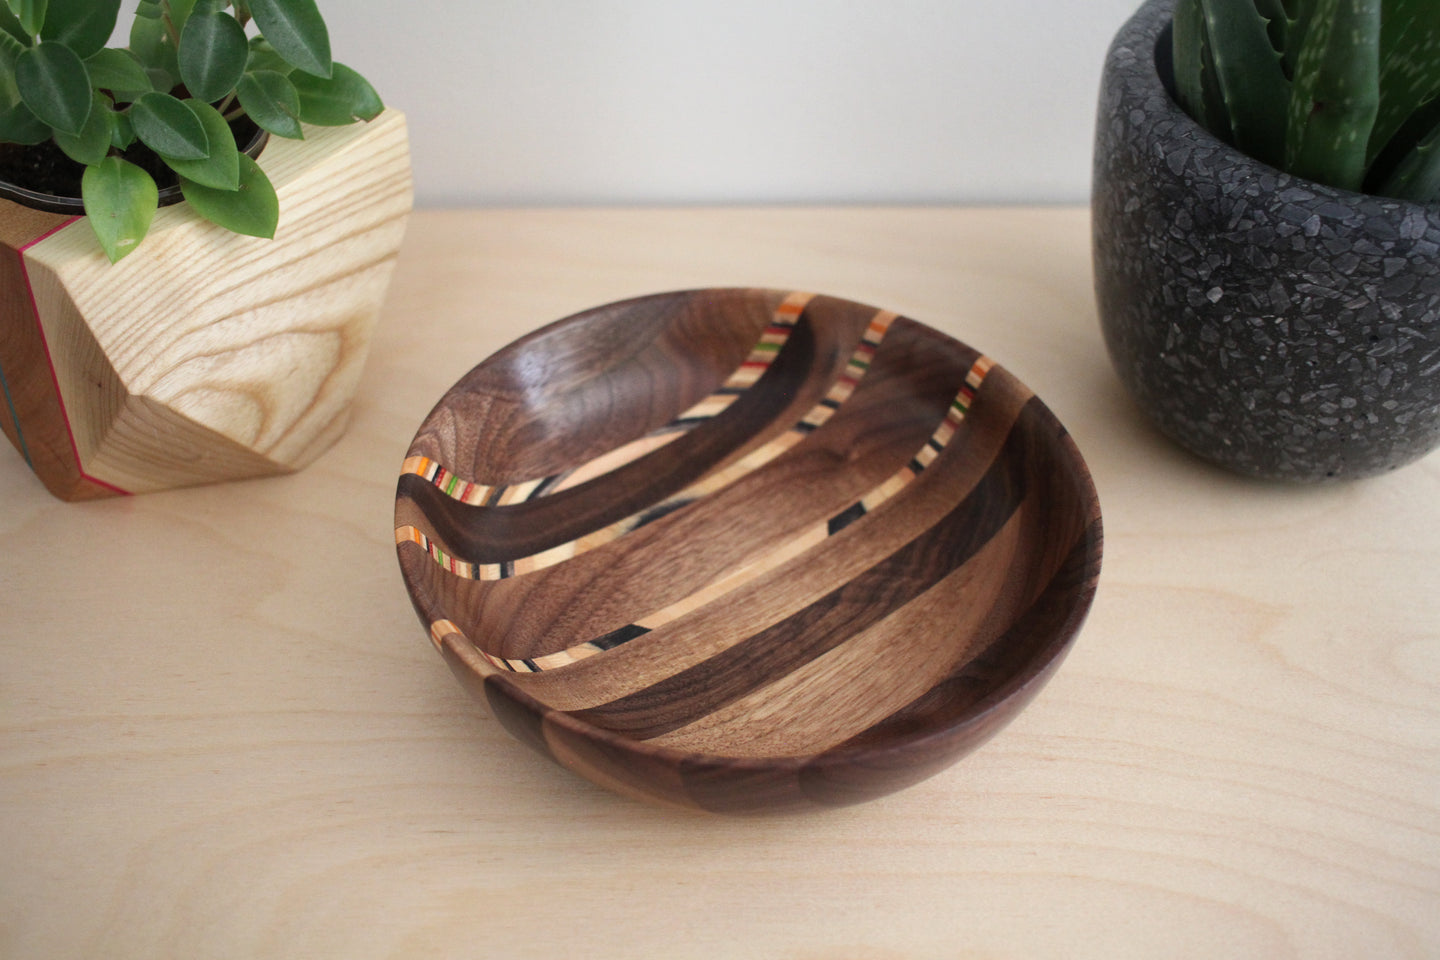 SKATEBOARD & WALNUT DISH